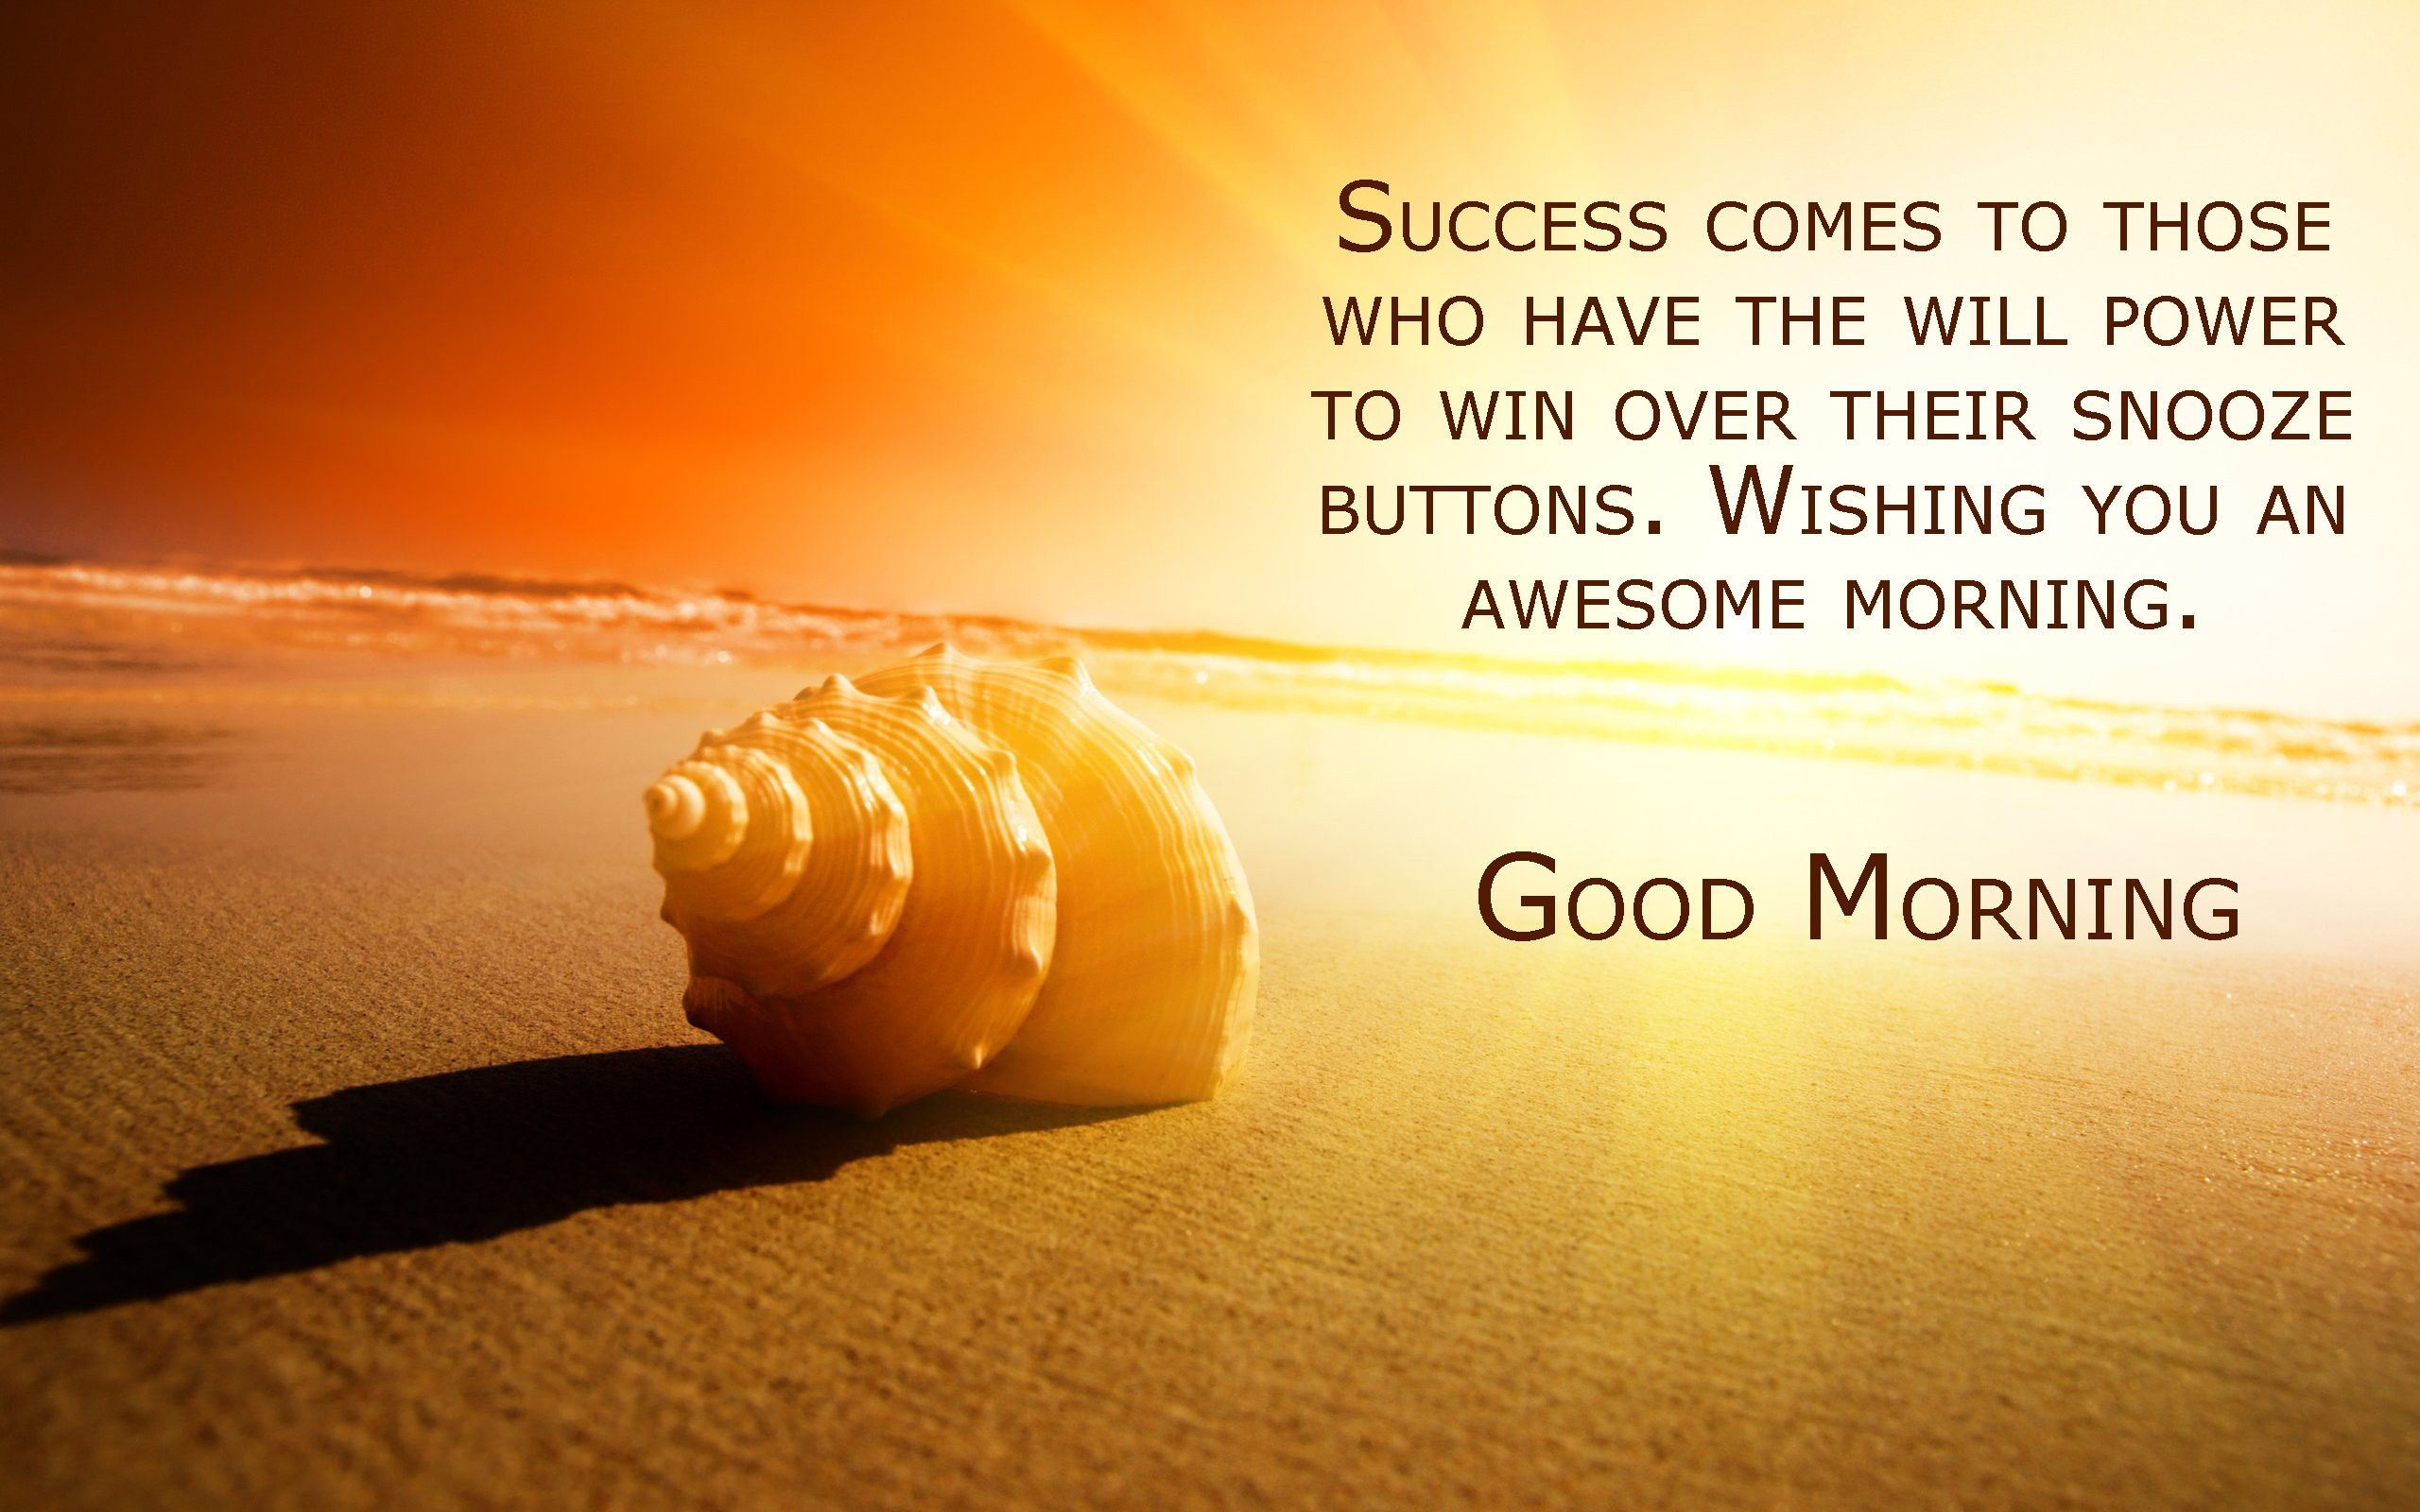 Good Morning Success Quotes Sucess Comes To Those Best Good